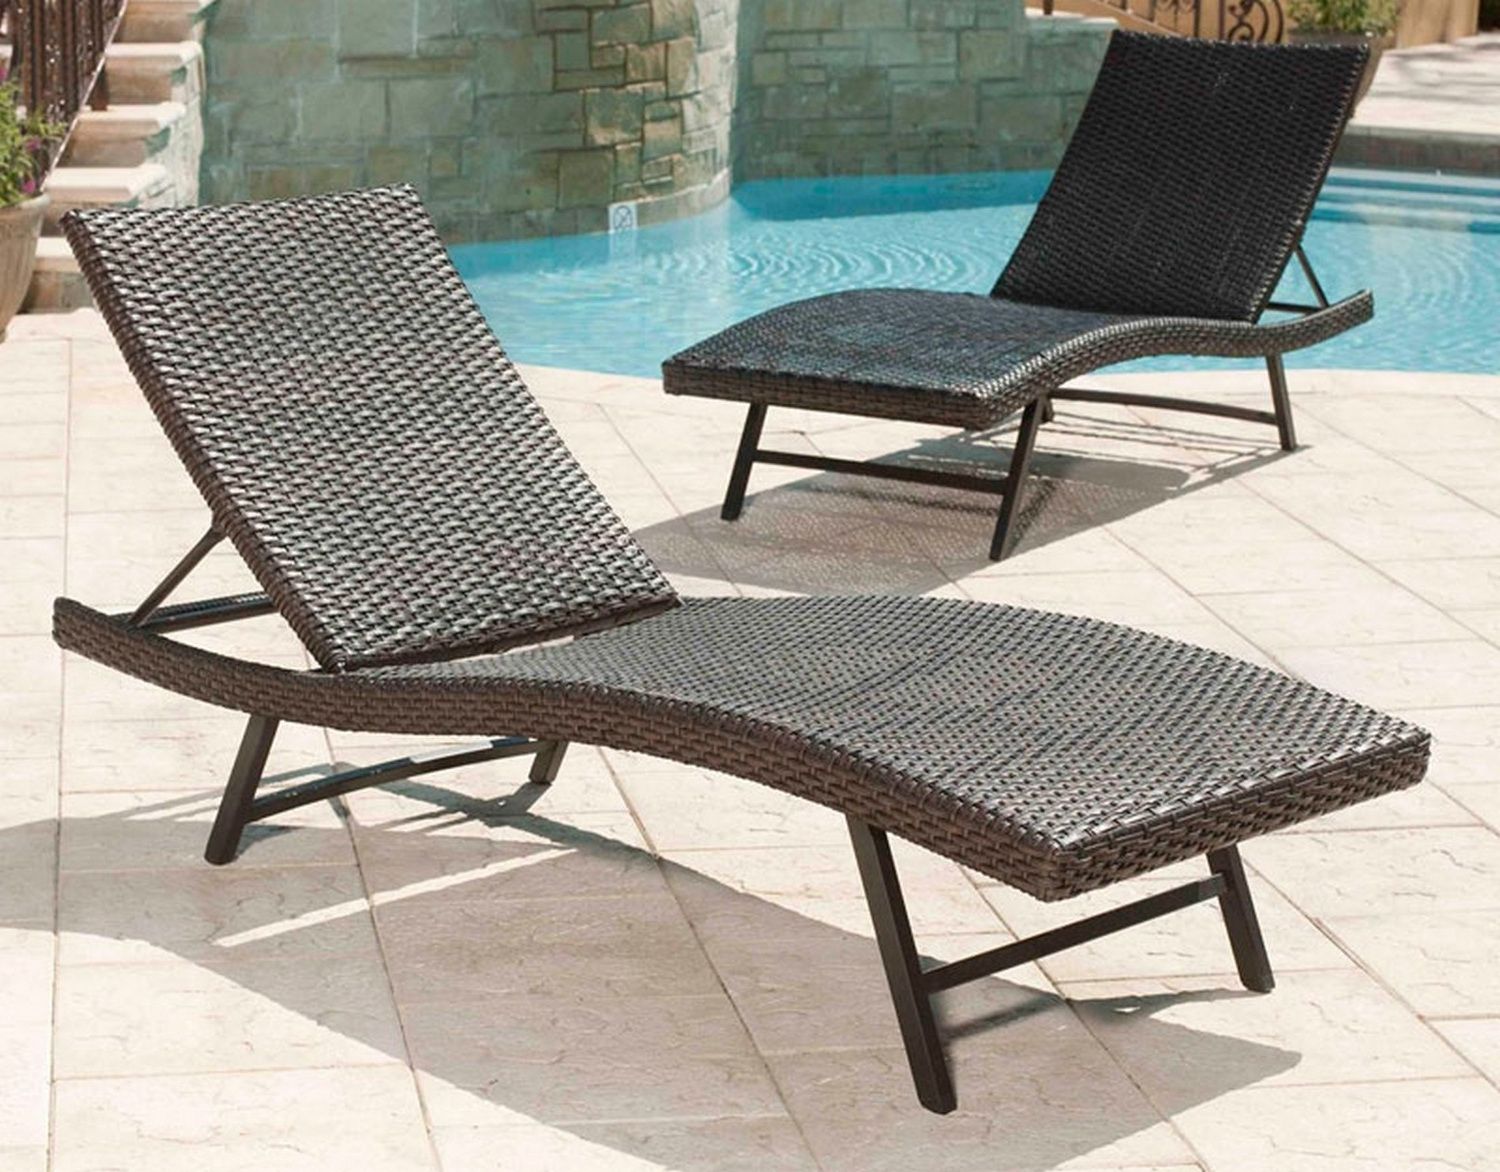 Current Outdoor Pool Chaise Lounge Chairs In Swimming Pool Furniture Interior Furniture Design Regarding (View 11 of 15)